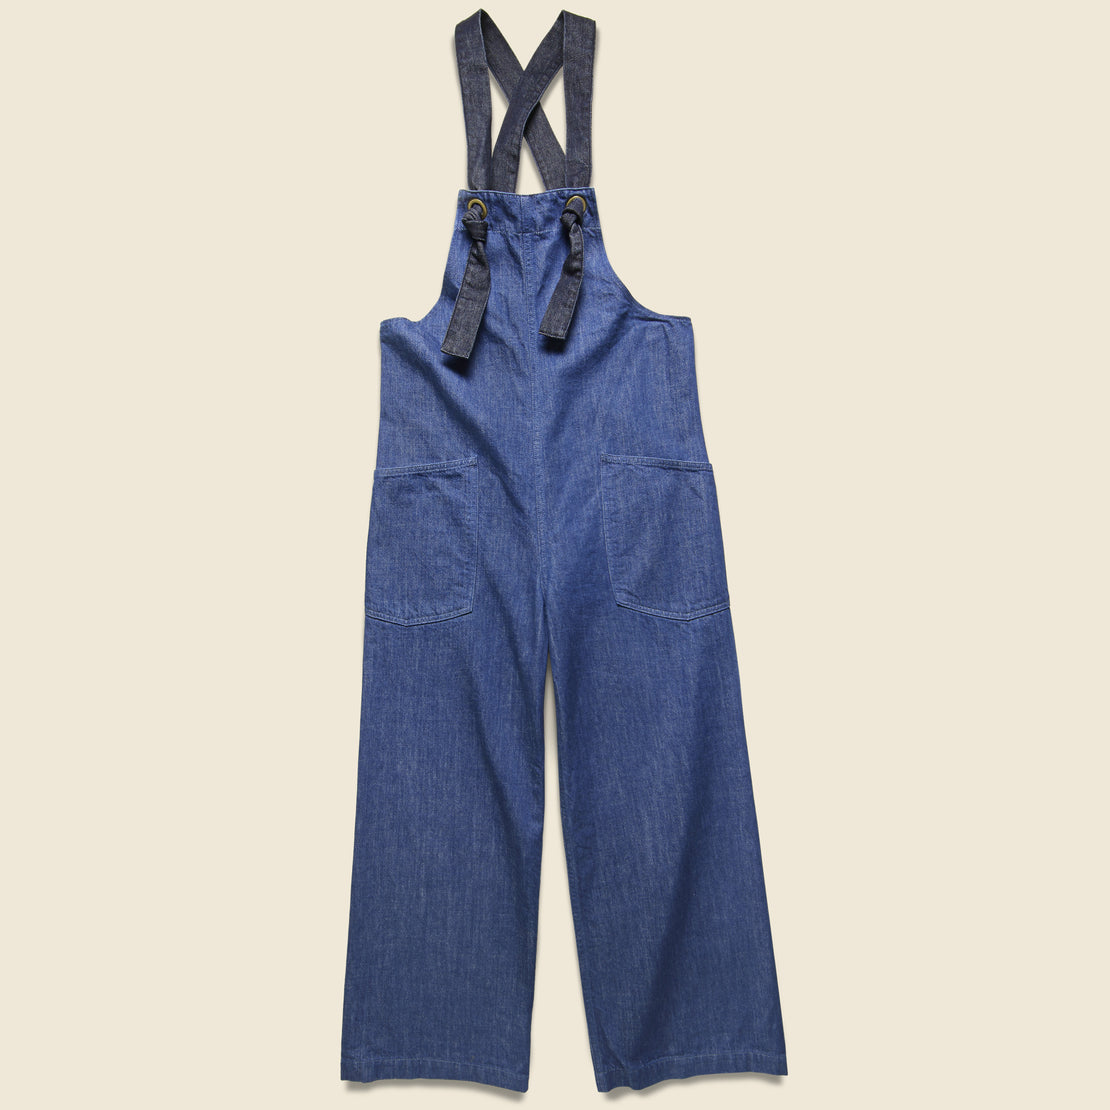 Kapital Lace-up Lobster Man Salopette Overall - 11.5oz Indigo